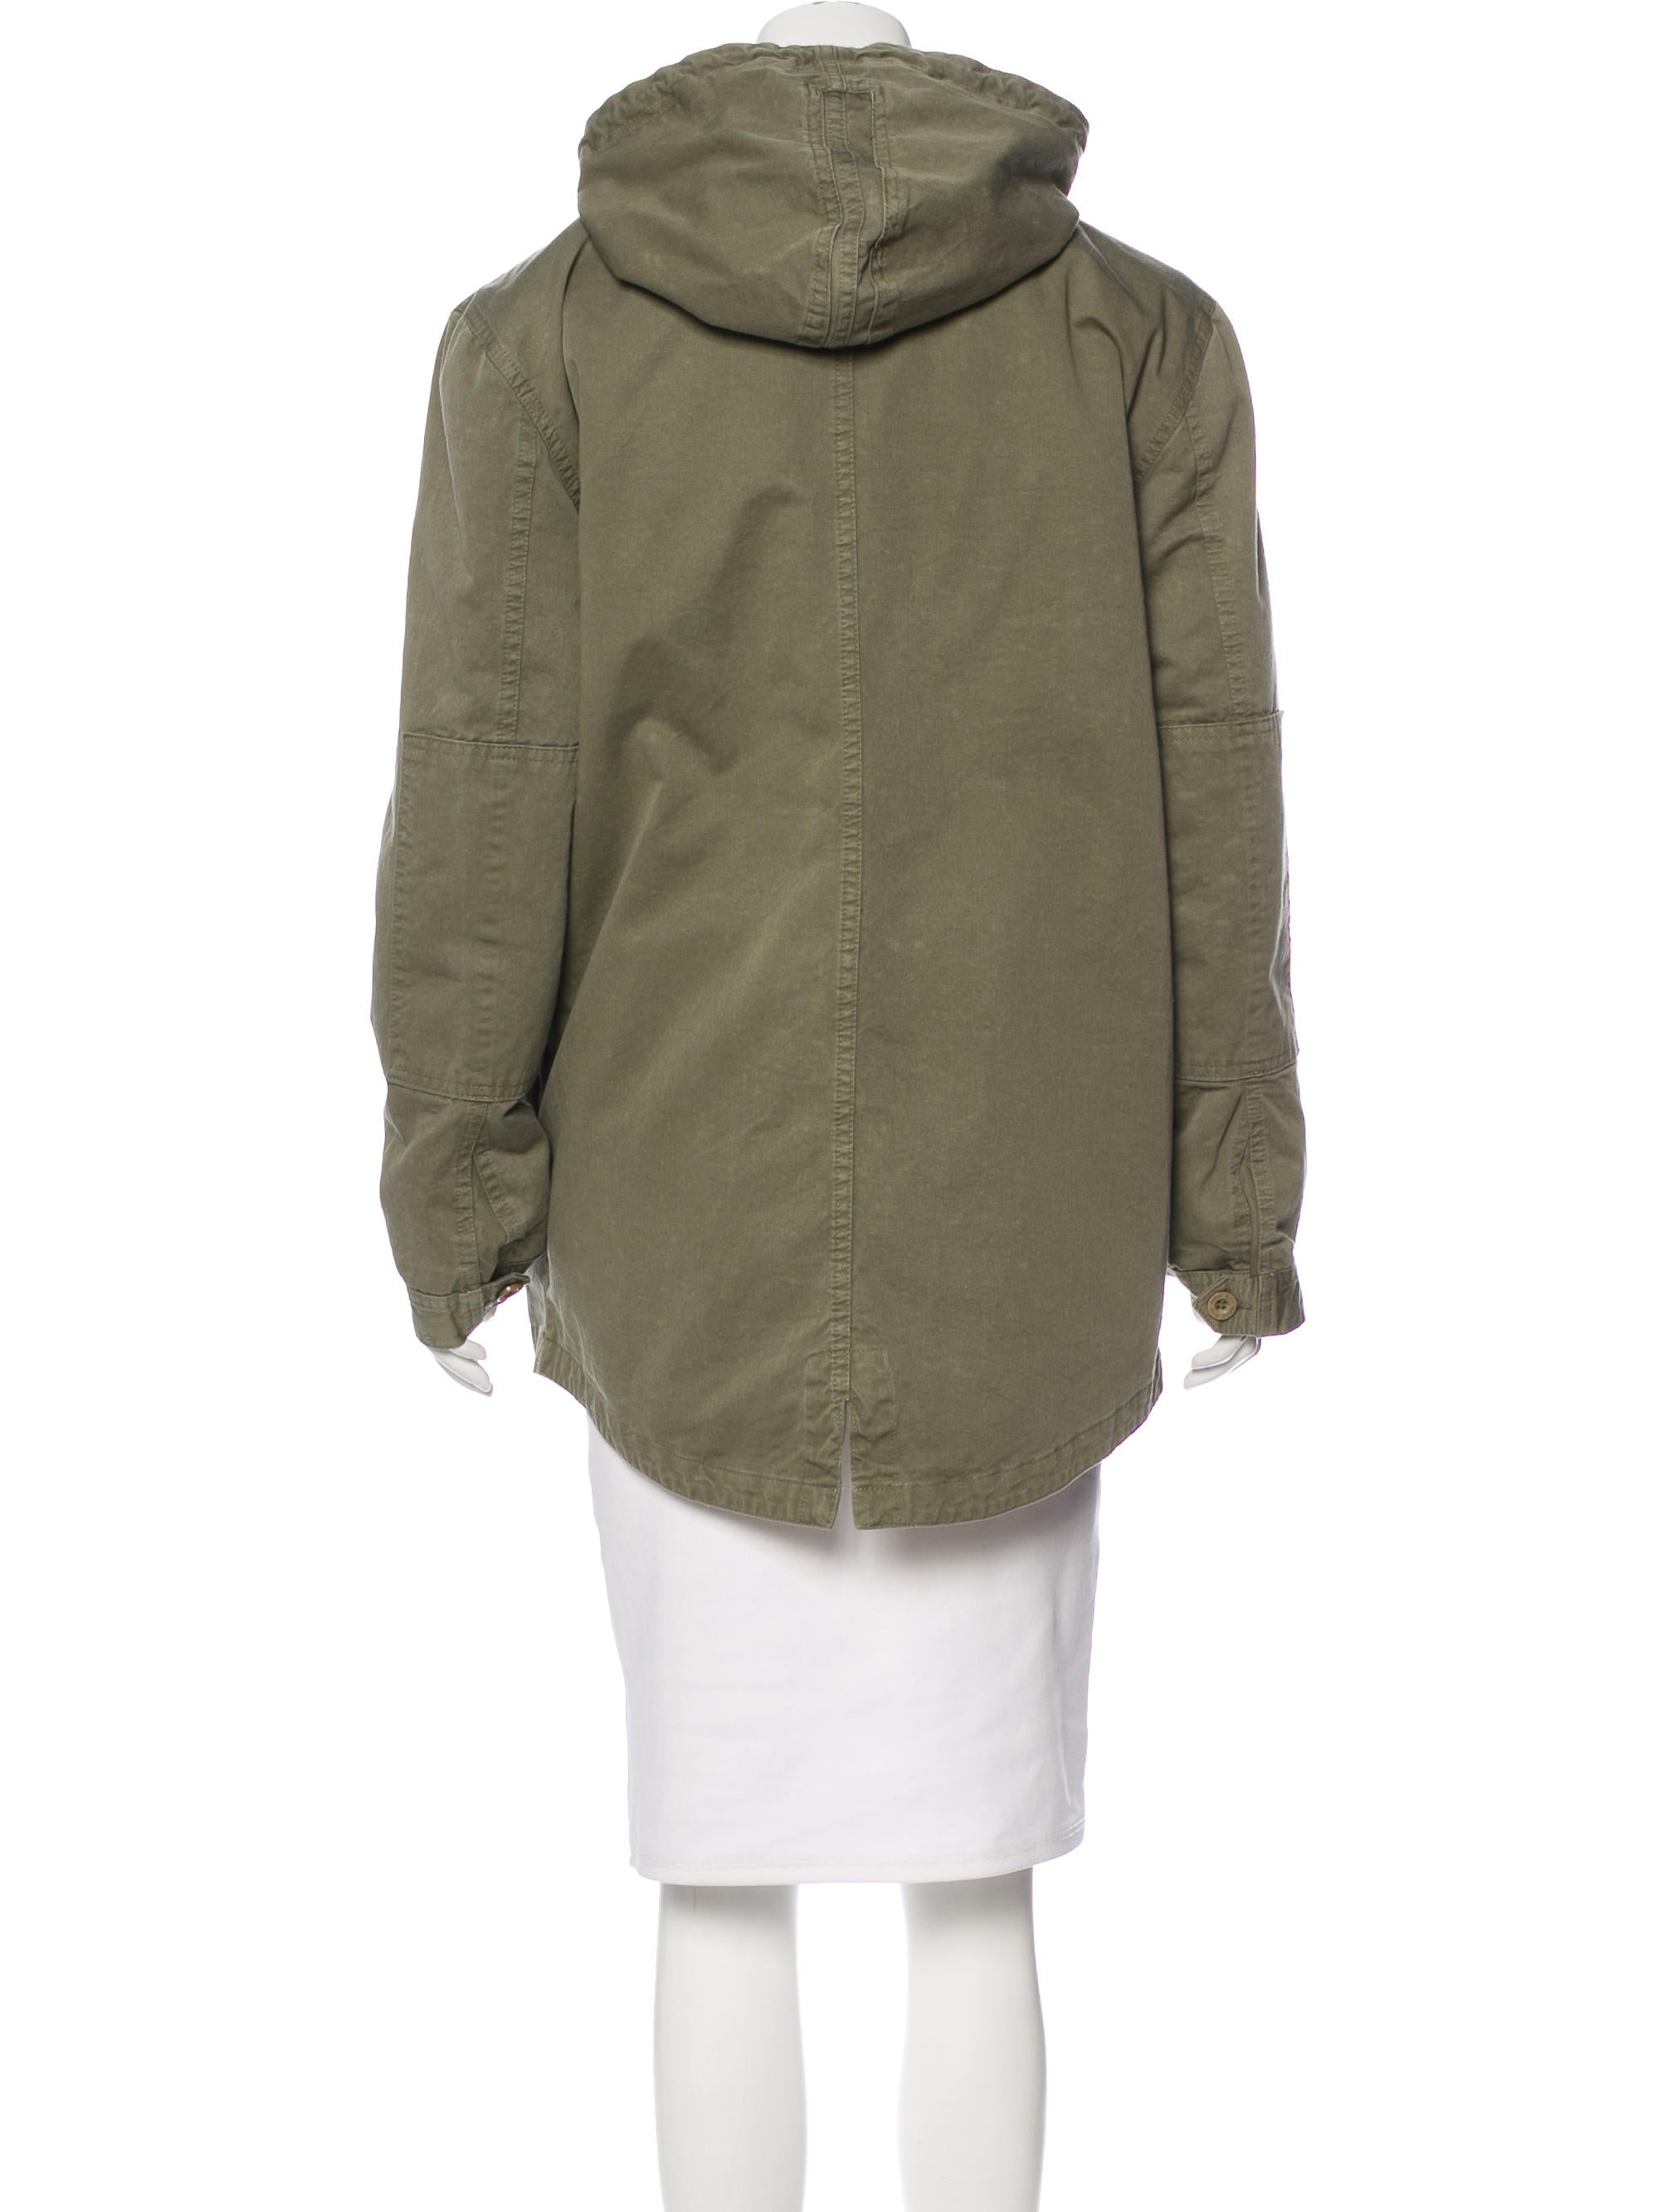 Anine Bing Hooded Short Coat Clothing W6o21074 The Realreal With Hood